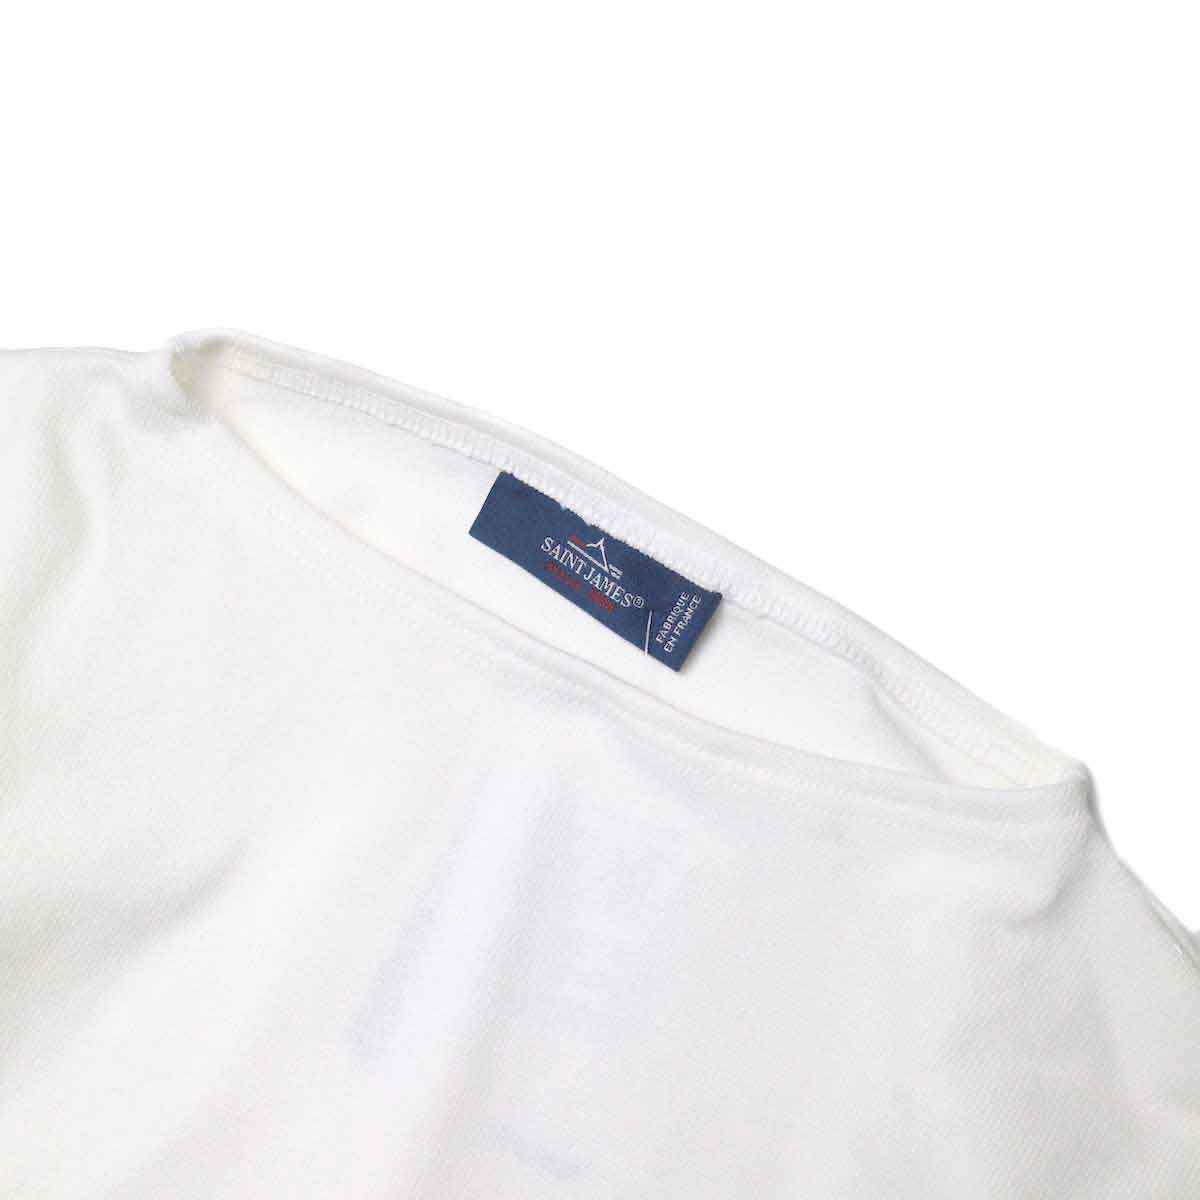 """SAINT JAMES / OUESSANT """"SOLID"""" (Neige) ボートネック、色"""